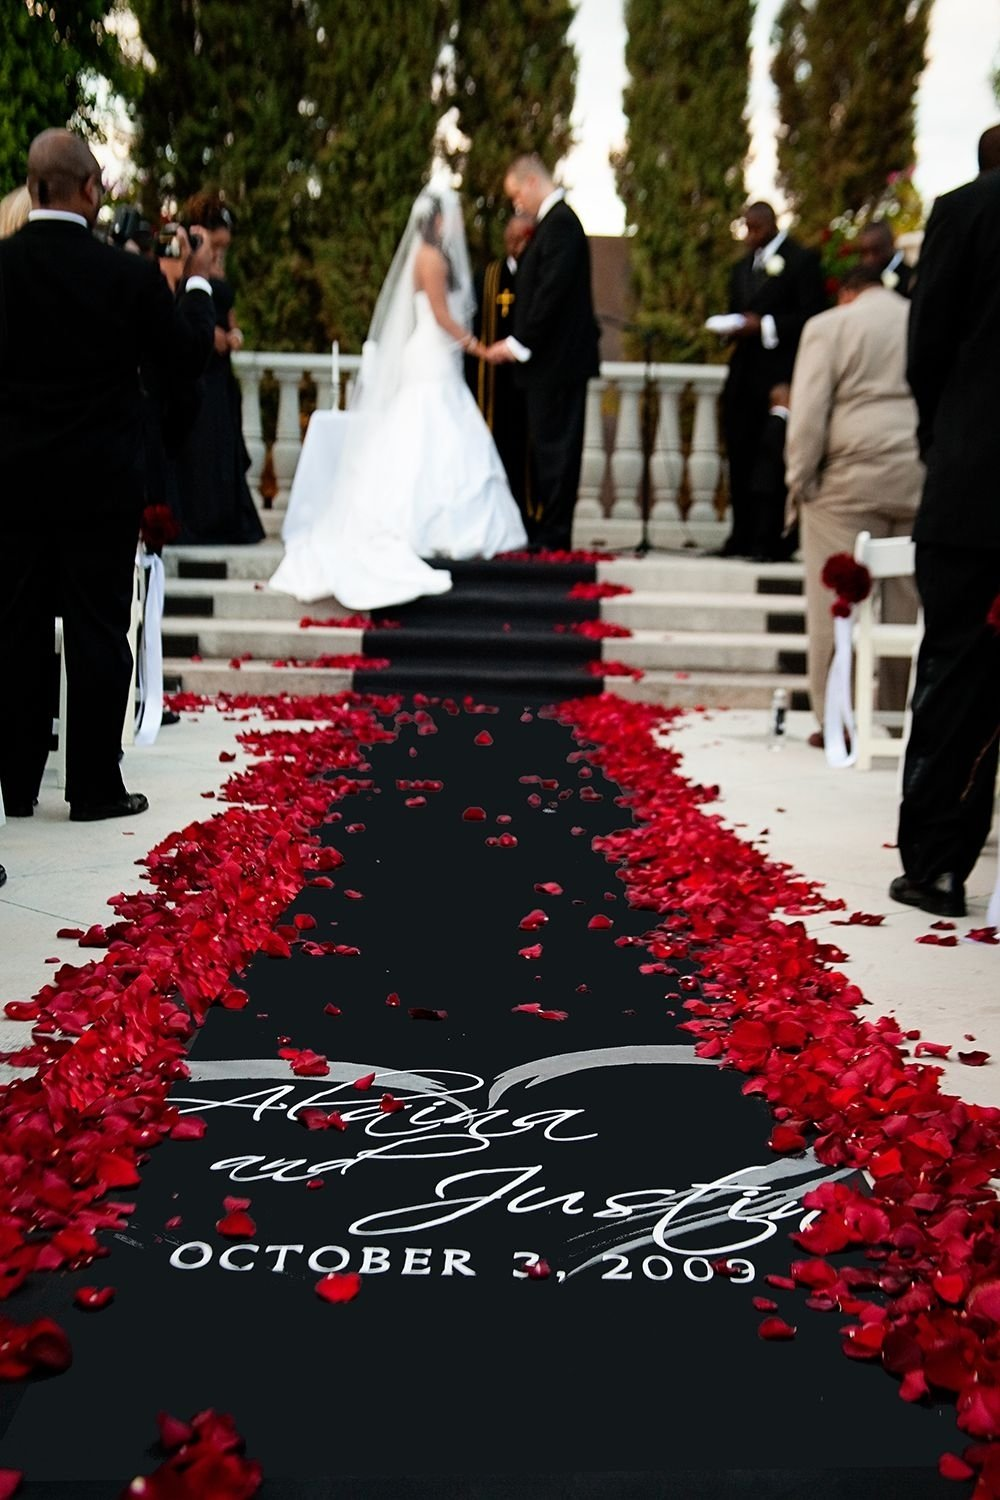 10 Perfect Red White And Black Wedding Ideas black and red wedding ideas wedding ideas pinterest red 2 2020